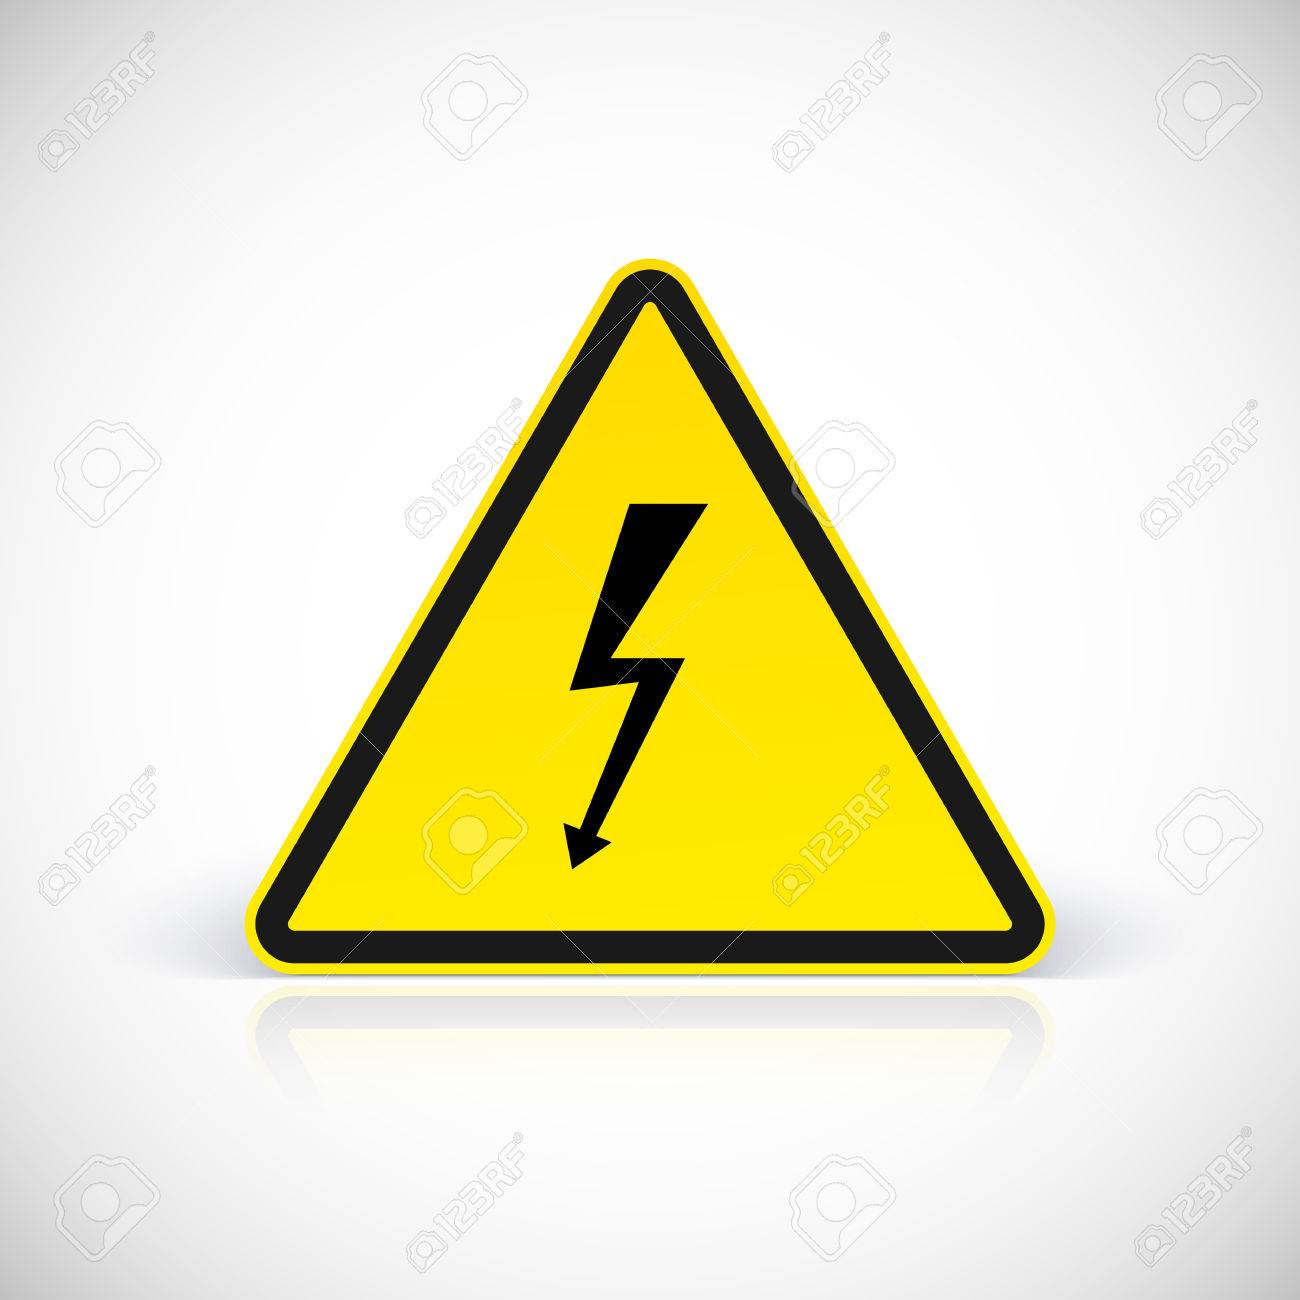 Cute electrical shock symbol gallery electrical and wiring attention electric shock signs symbol vector illustration for biocorpaavc Choice Image